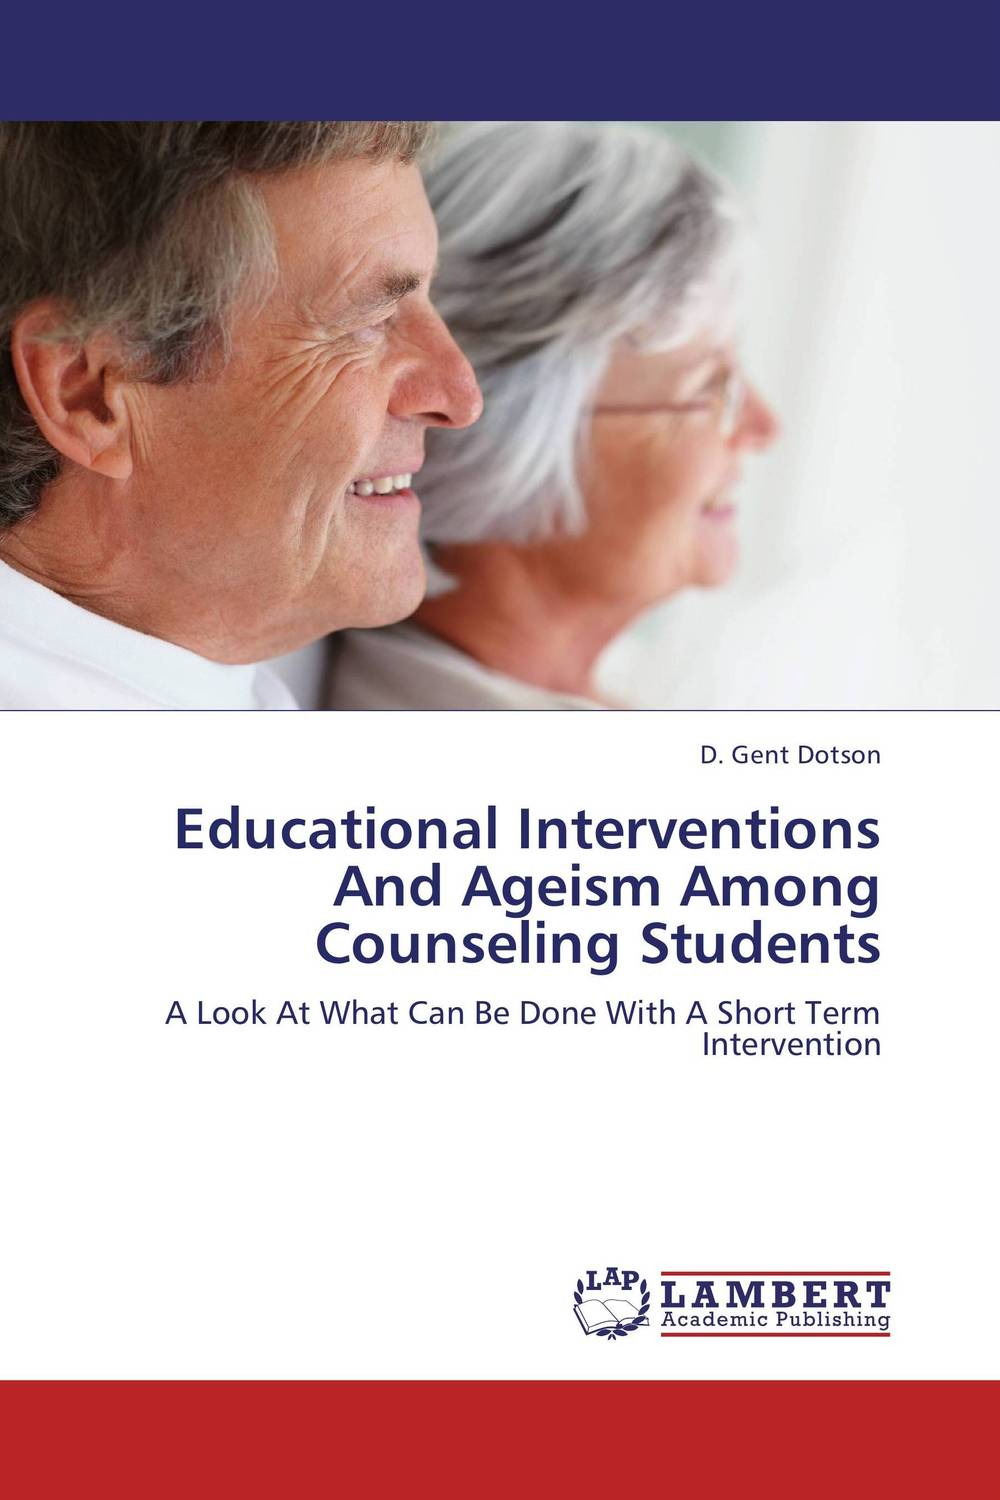 цены Educational Interventions And Ageism Among Counseling Students